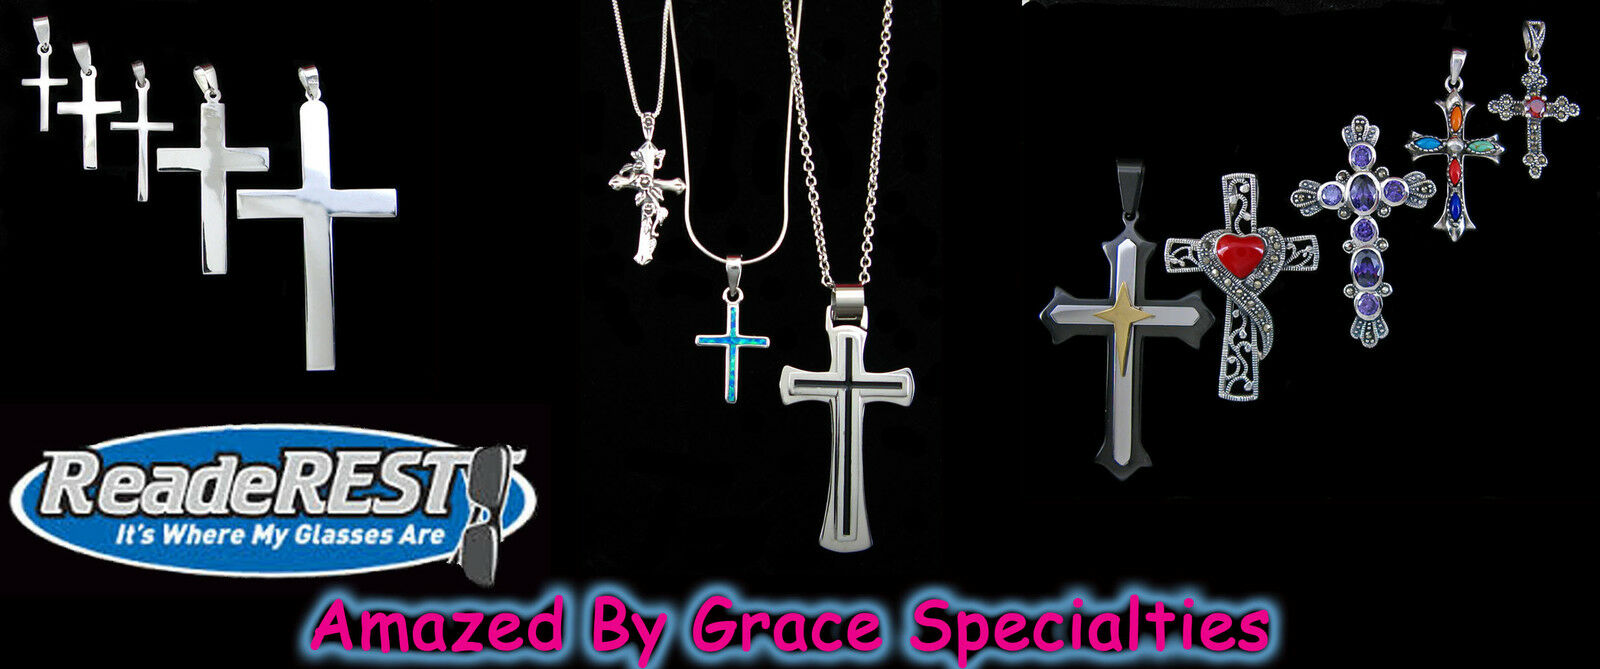 Amazed By Grace Specialties